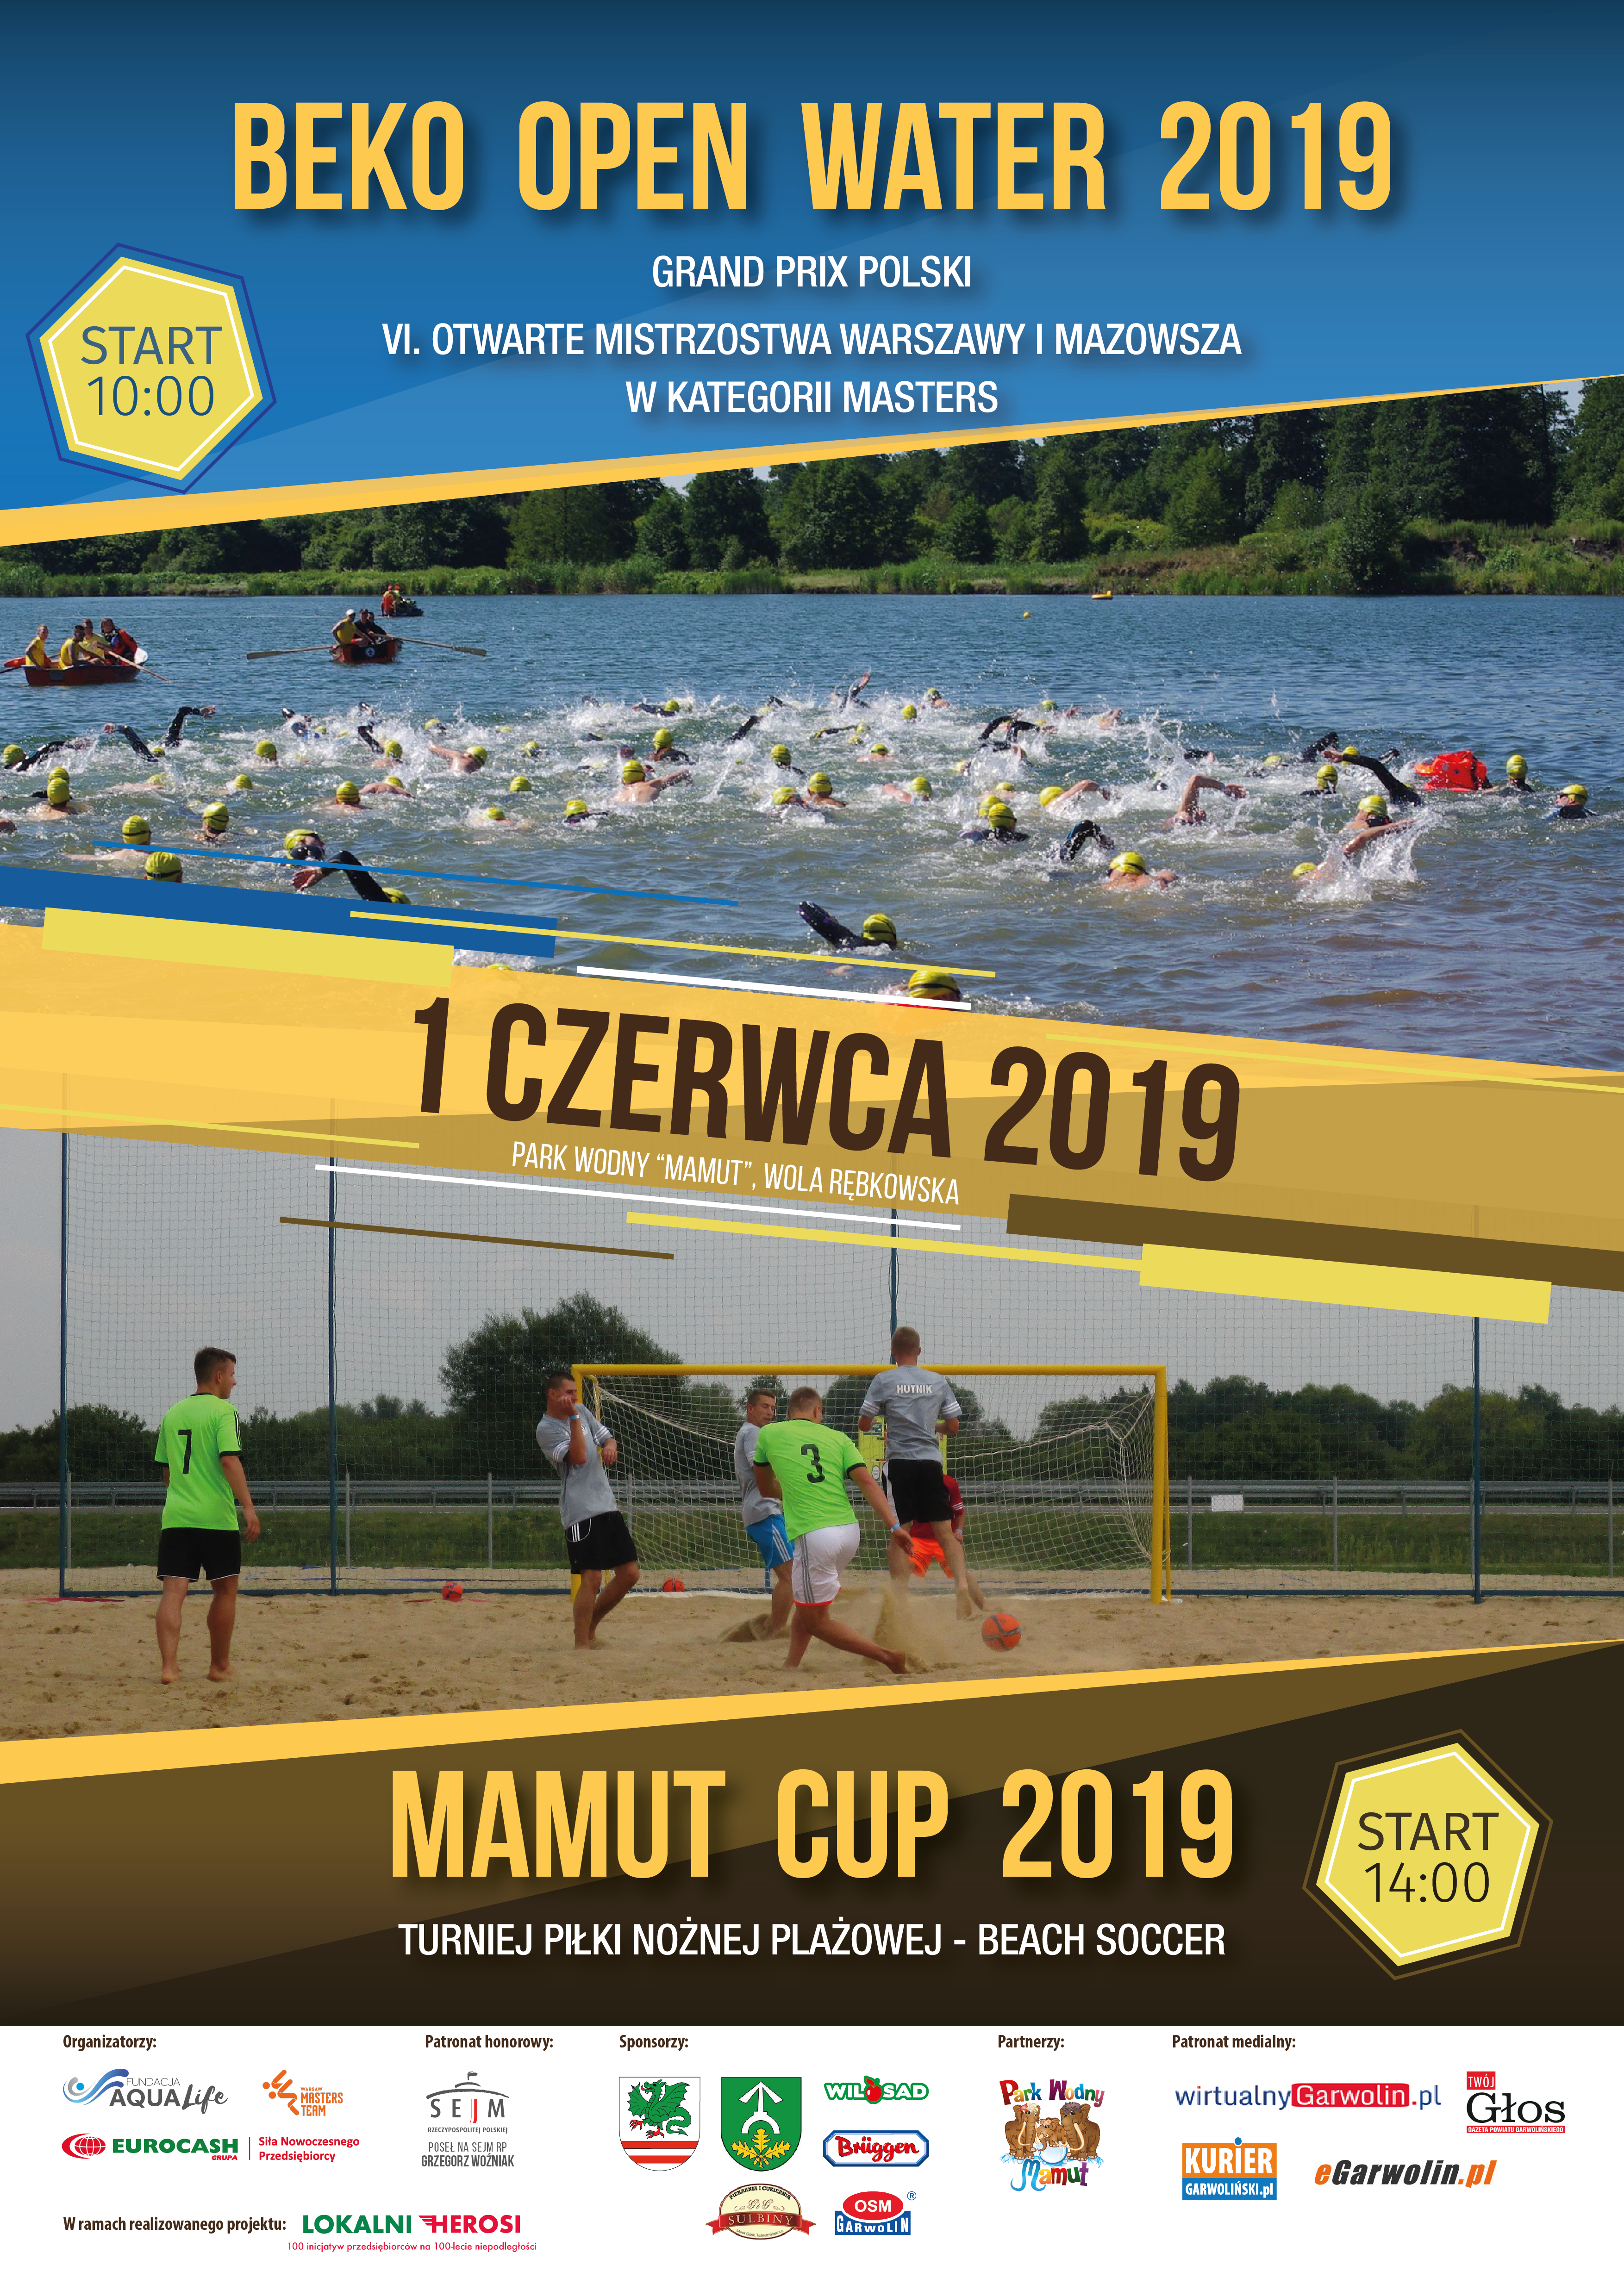 BEKO OPEN WATER i MAMUT CUP 2019